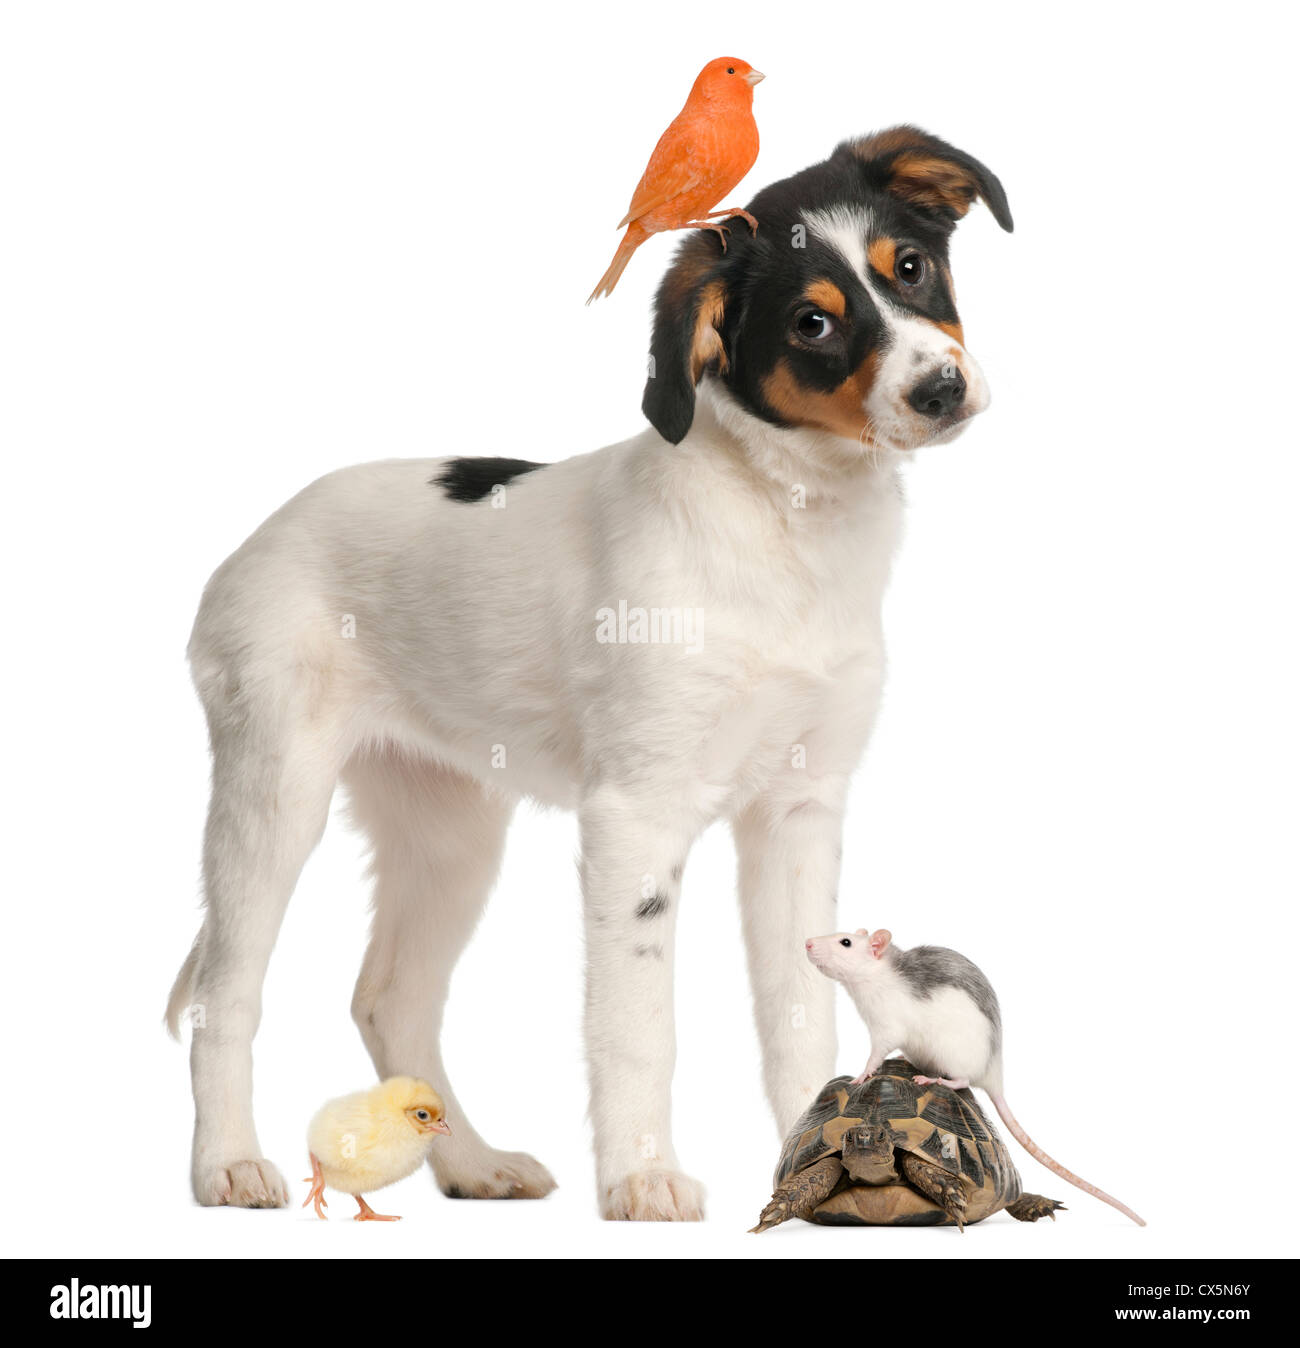 Mixed breed puppy, canary, chick, turtle and rat against white background - Stock Image